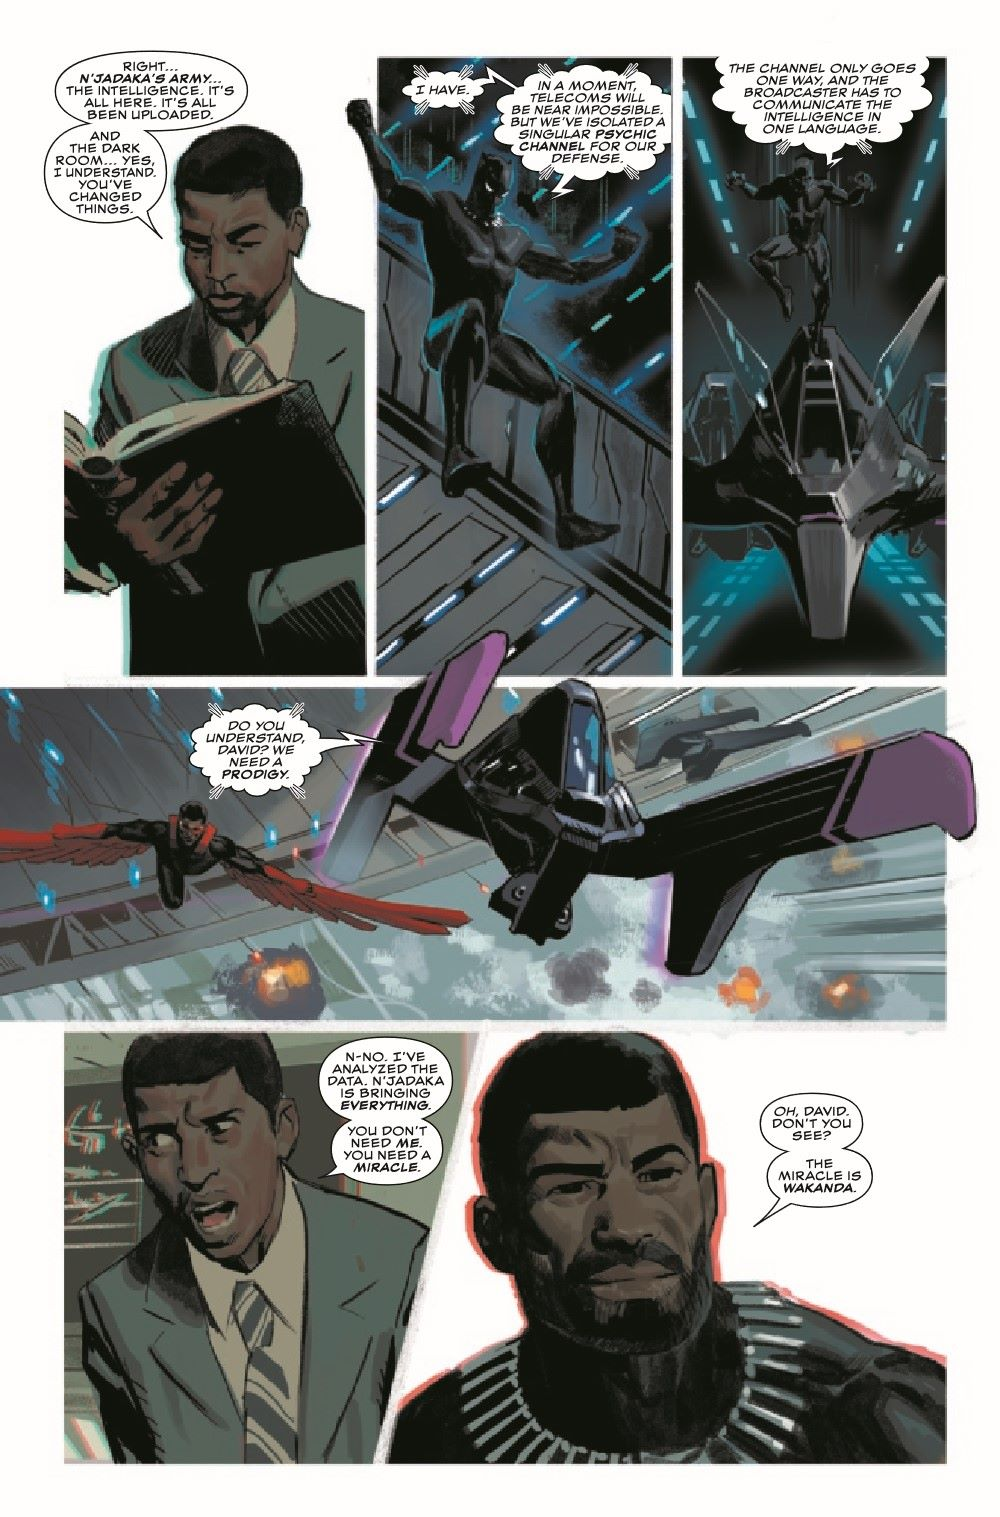 BLAP2018024_Preview-4 ComicList Previews: BLACK PANTHER #24